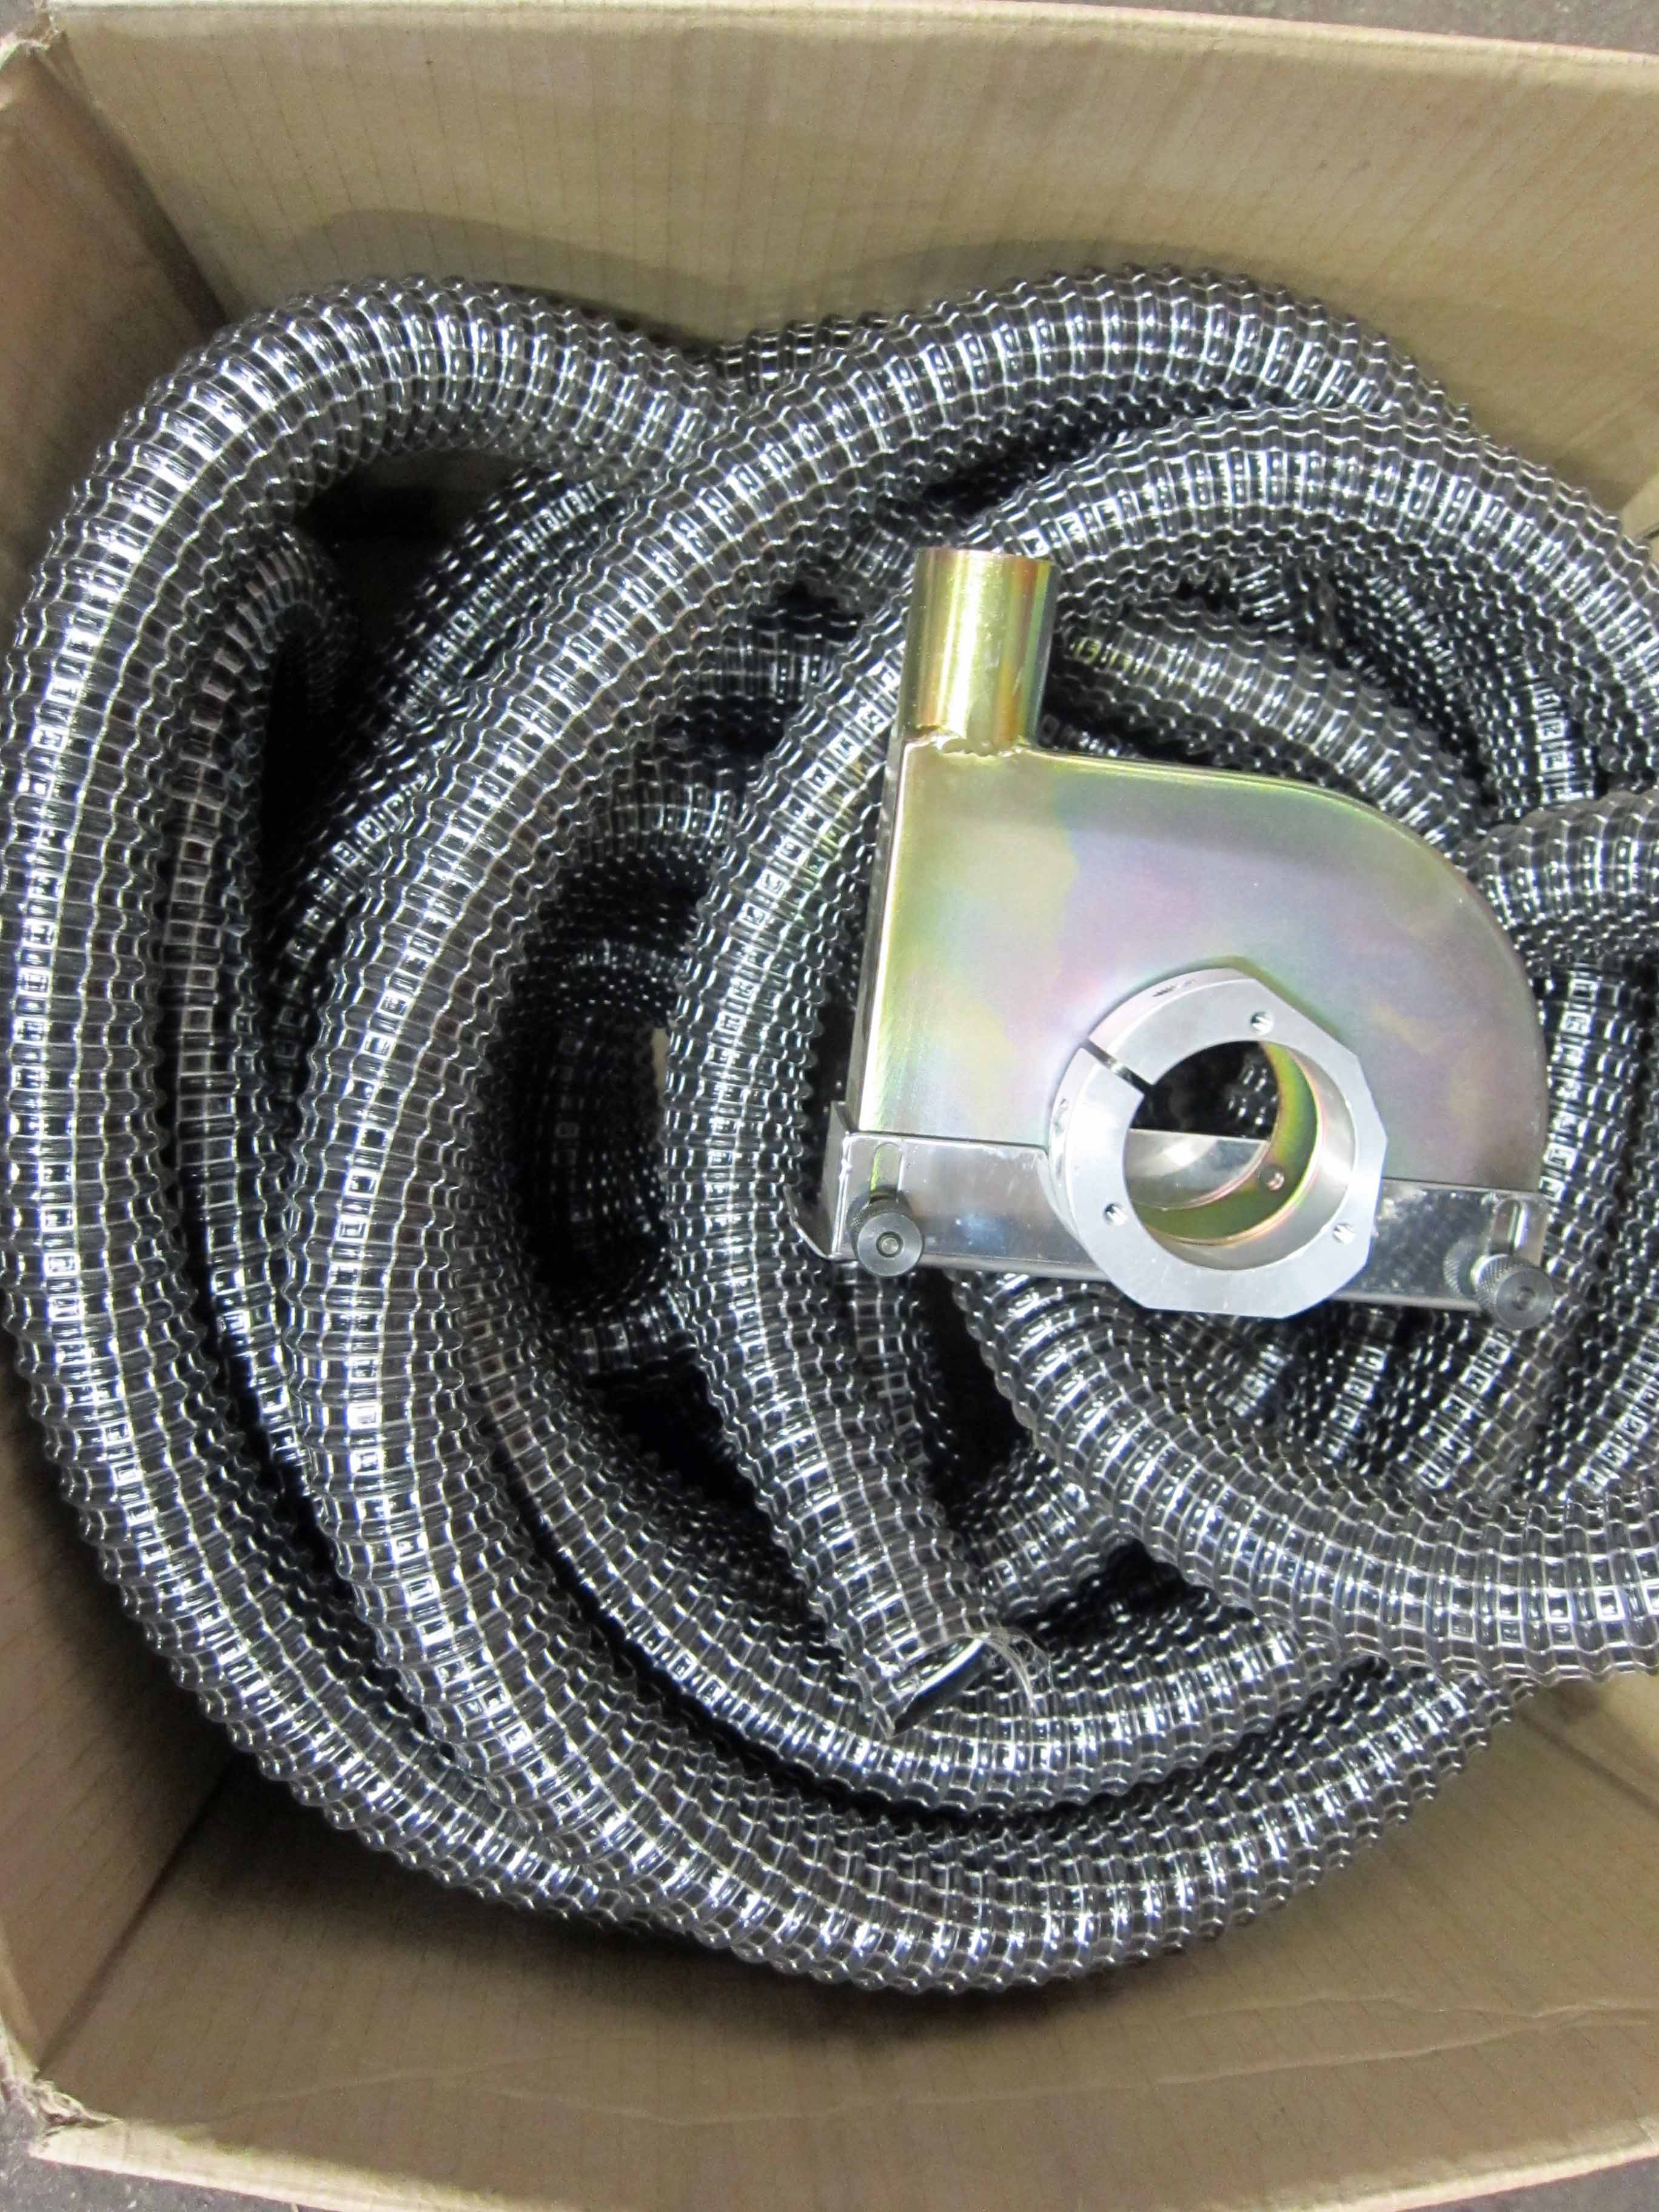 A WELDABILITY SIF Grinding Extraction Head complete with Approx. 15M of Extraction Hose and Coupling - Image 2 of 3